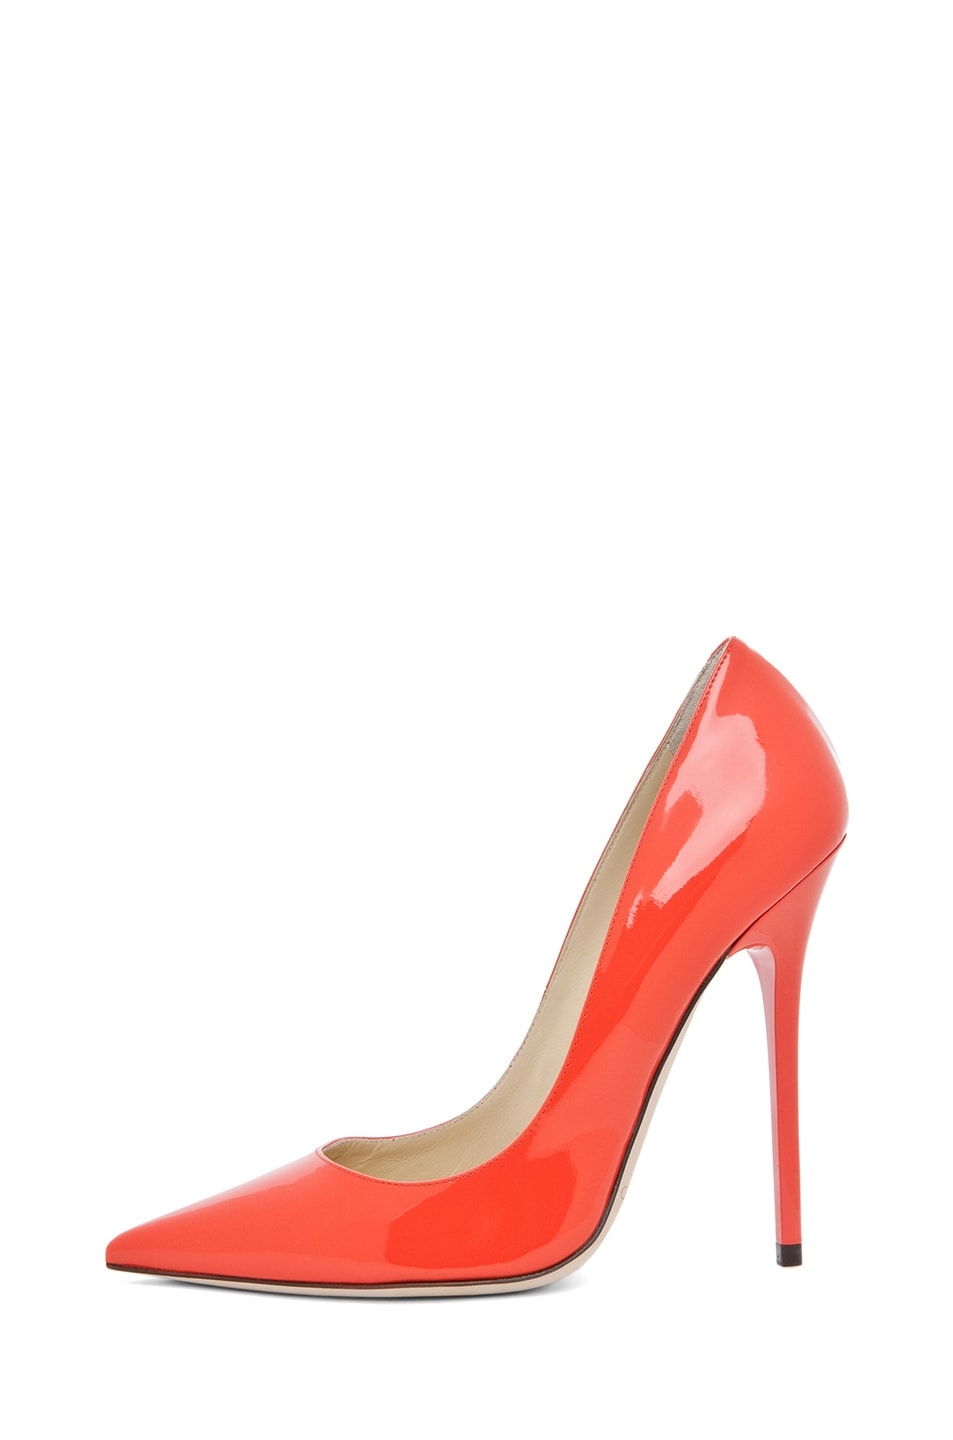 Image 1 of Jimmy Choo Anouk Pump in Tangerine